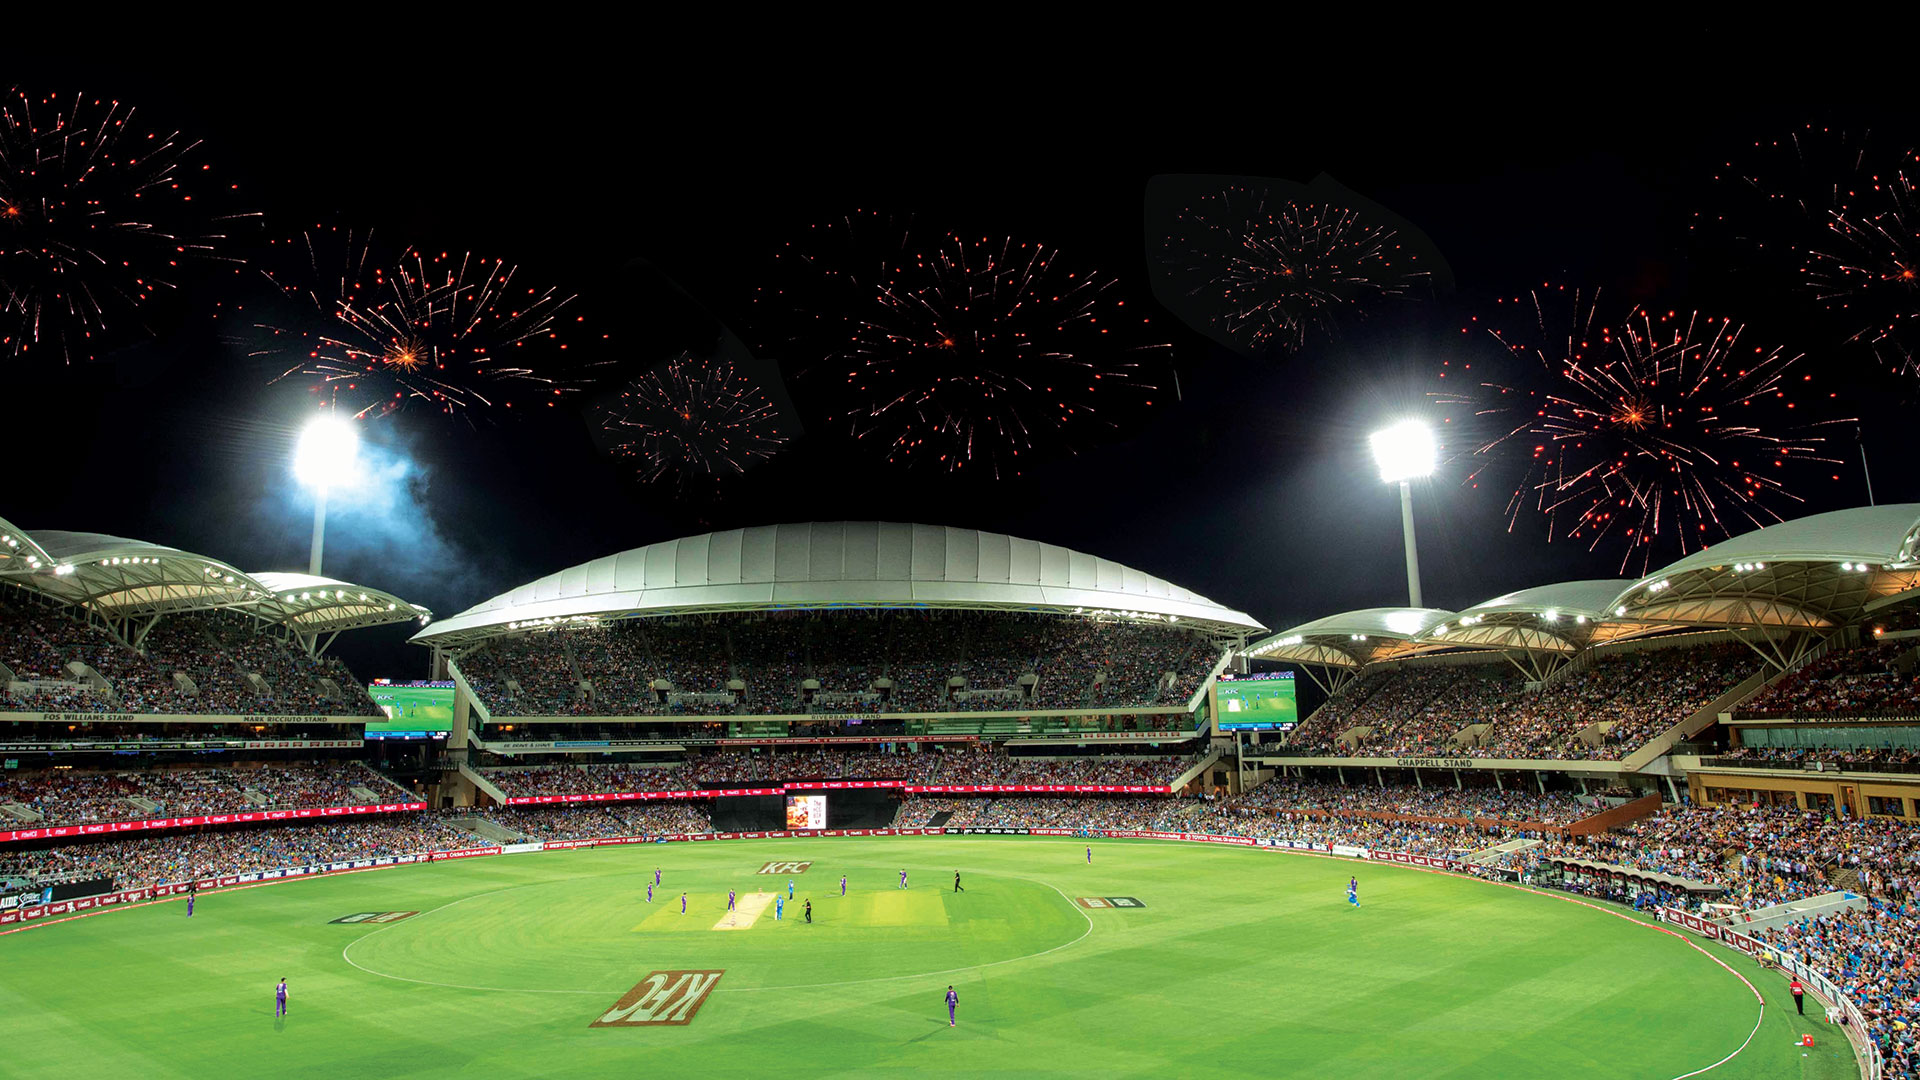 Fireworks over a BBL Match at Adelaide Oval